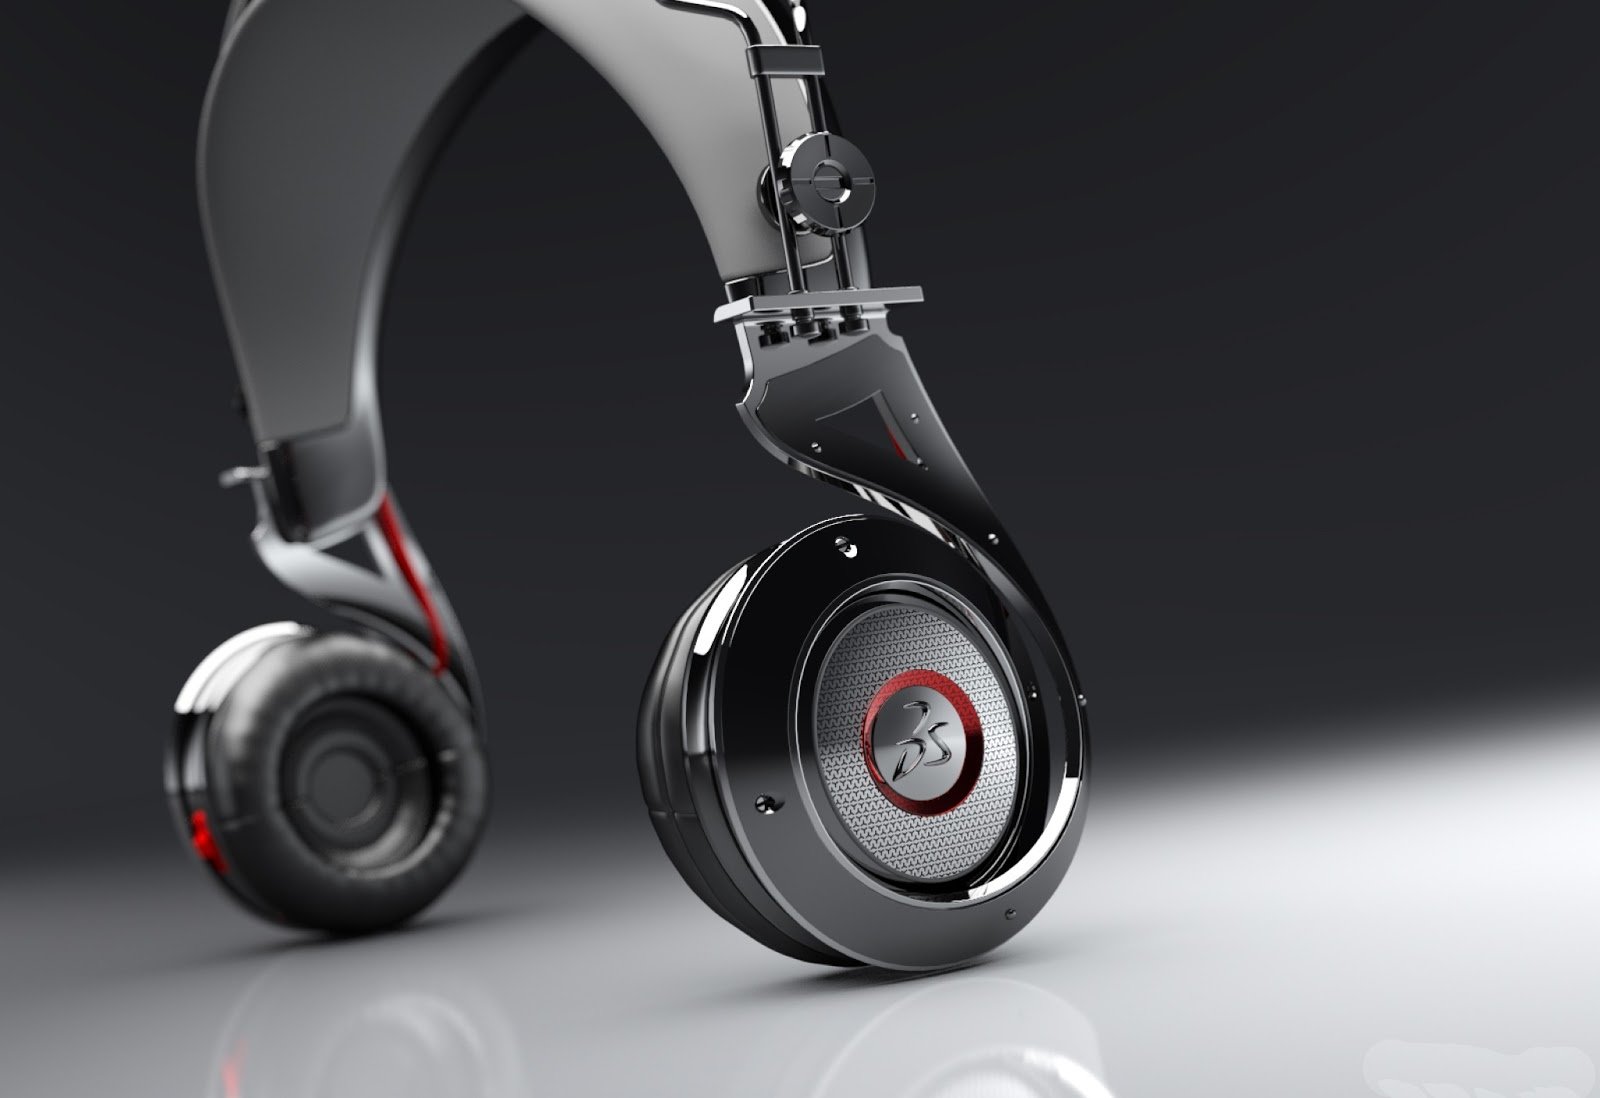 Hd Wallpapers Free Dj Headphonesheadphones Cartoon Hq Hd